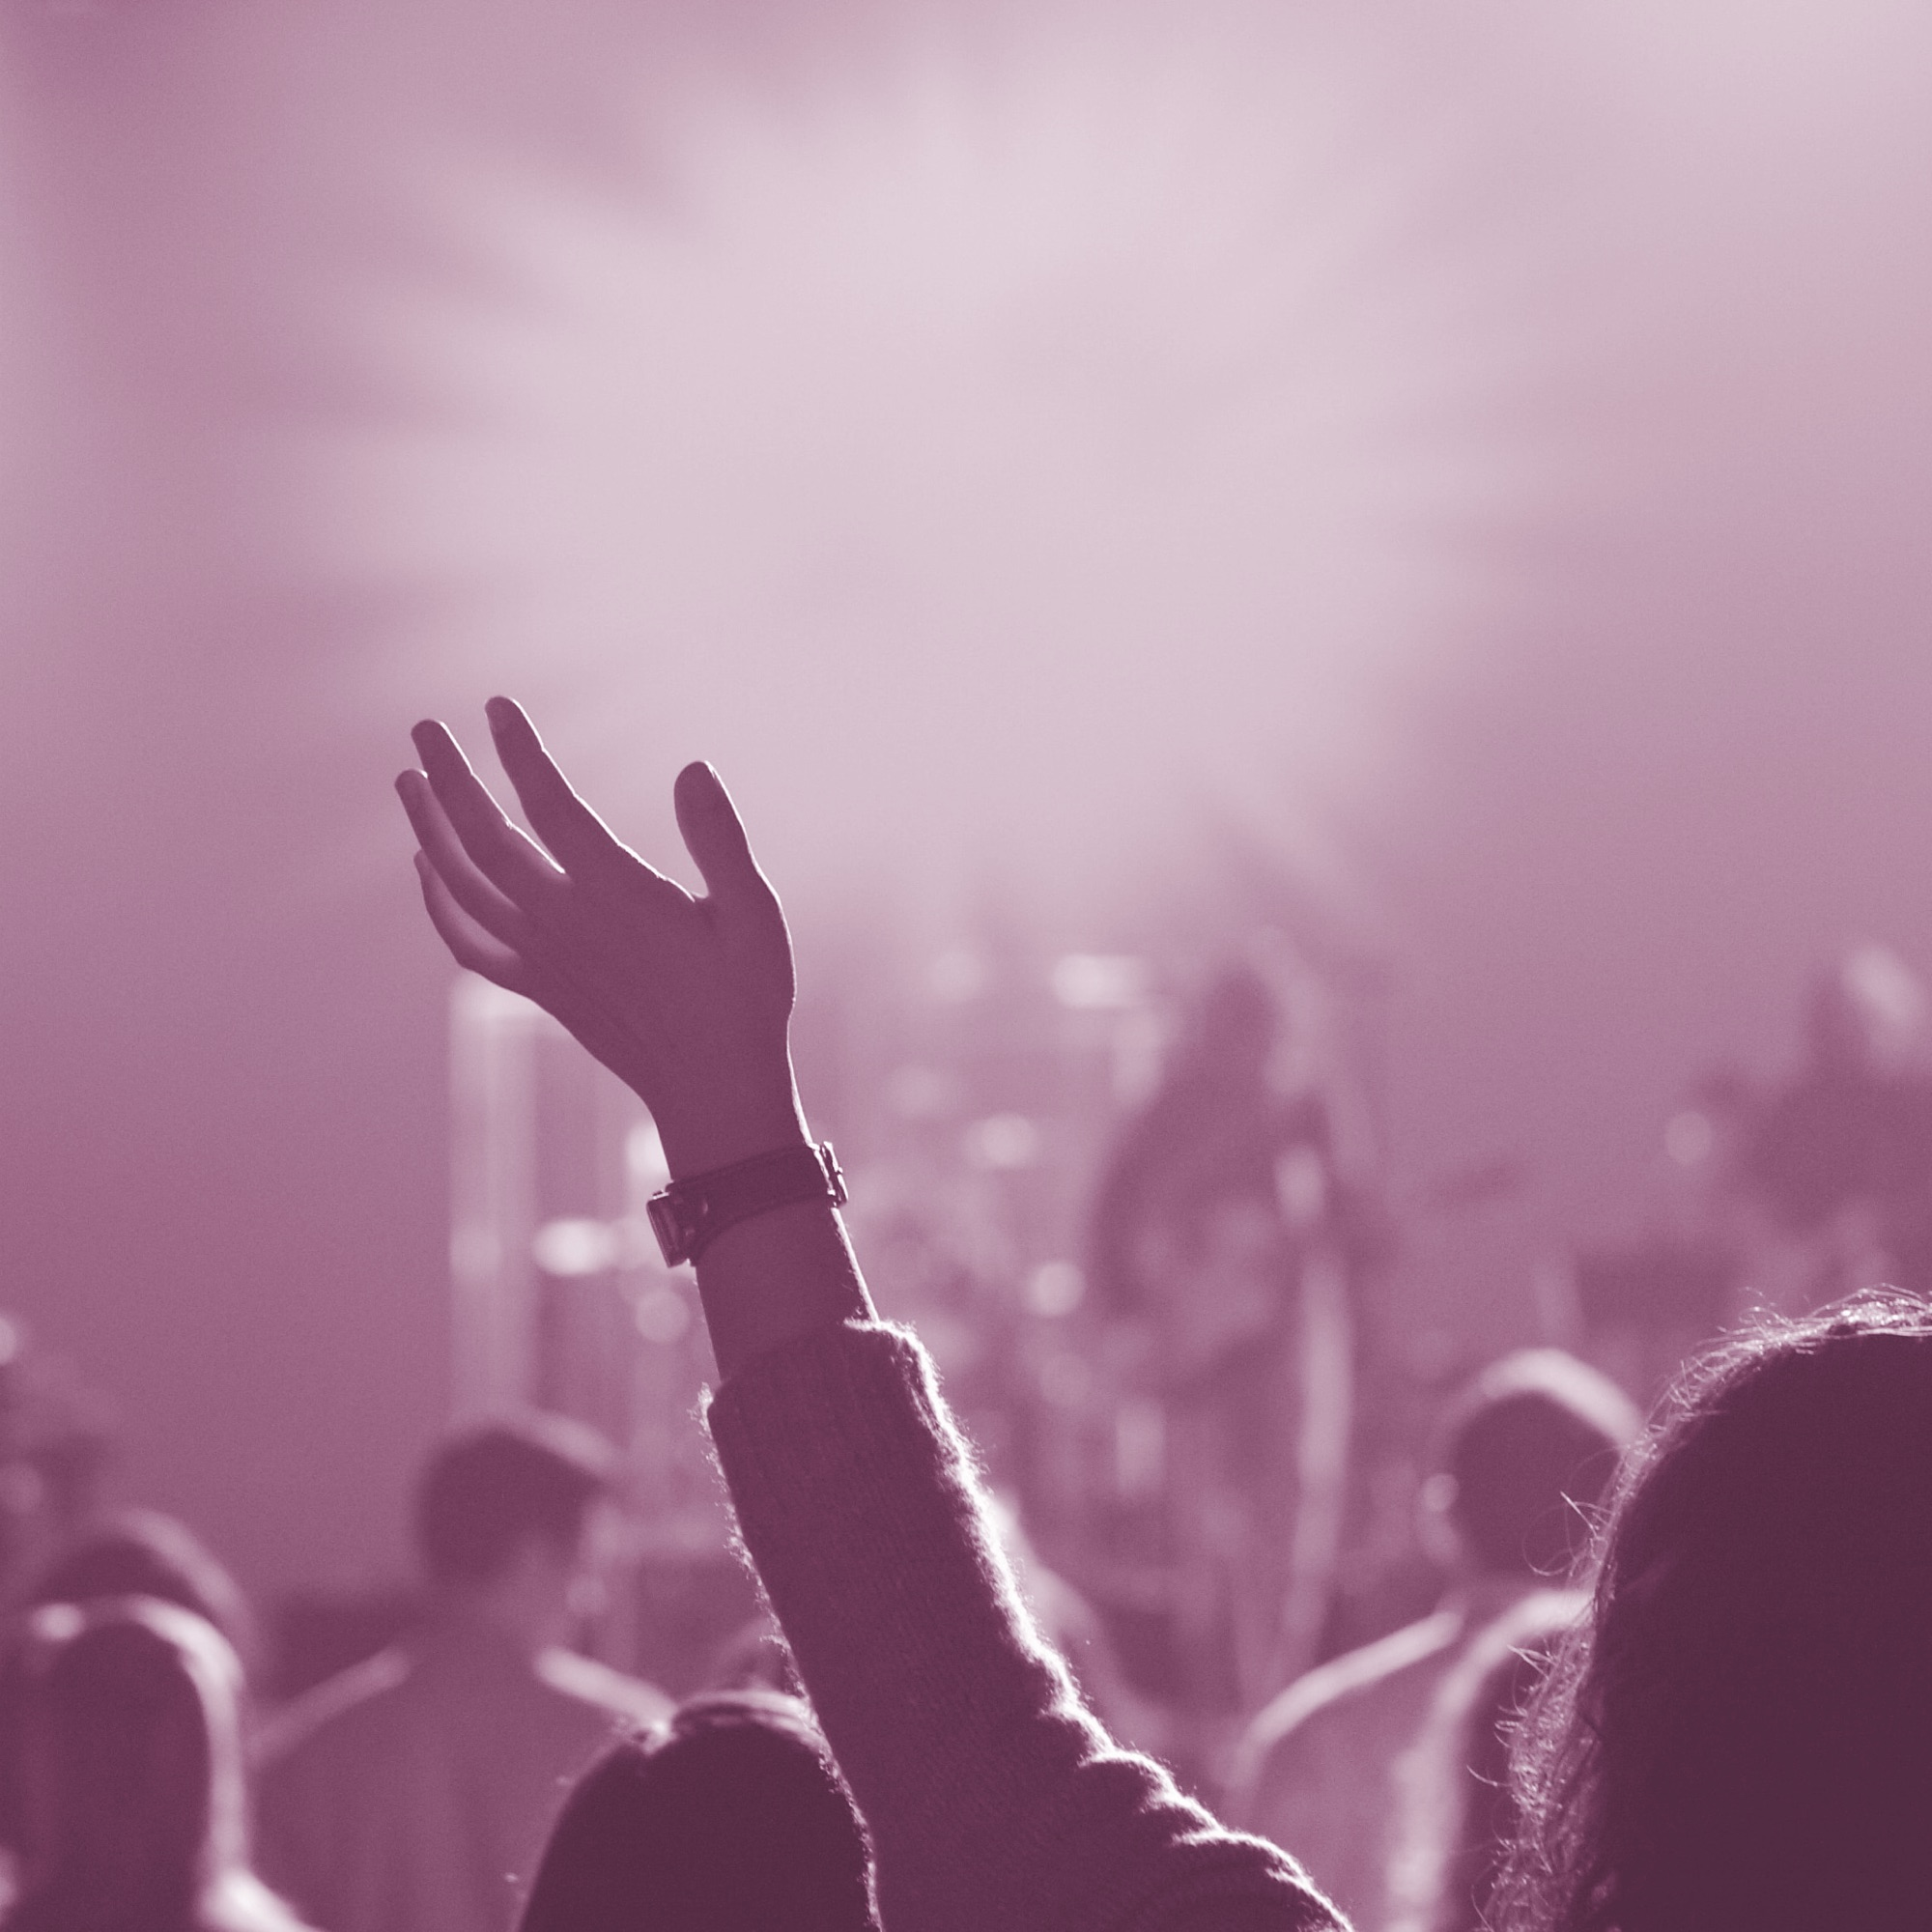 A person in worship, with their hands raised